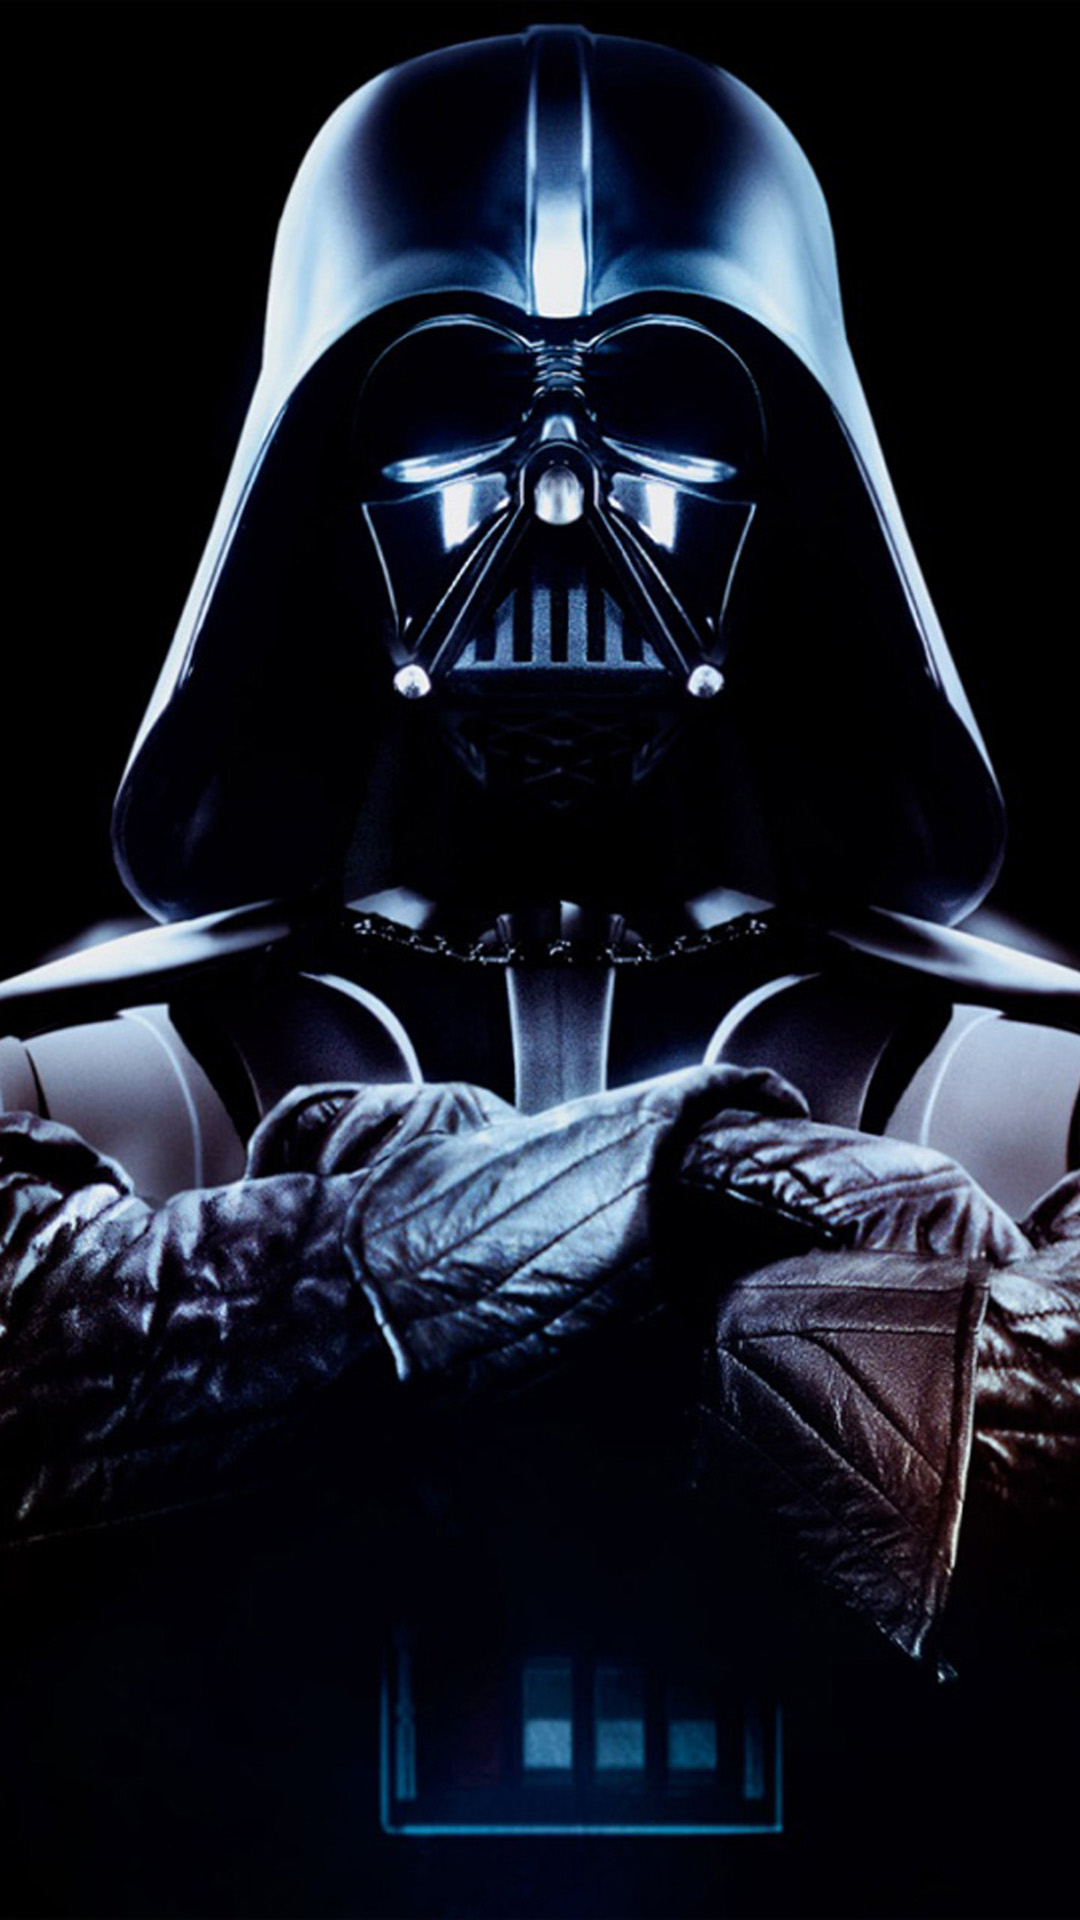 funny darth vader star wars hd wallpaper iphone 6 plus